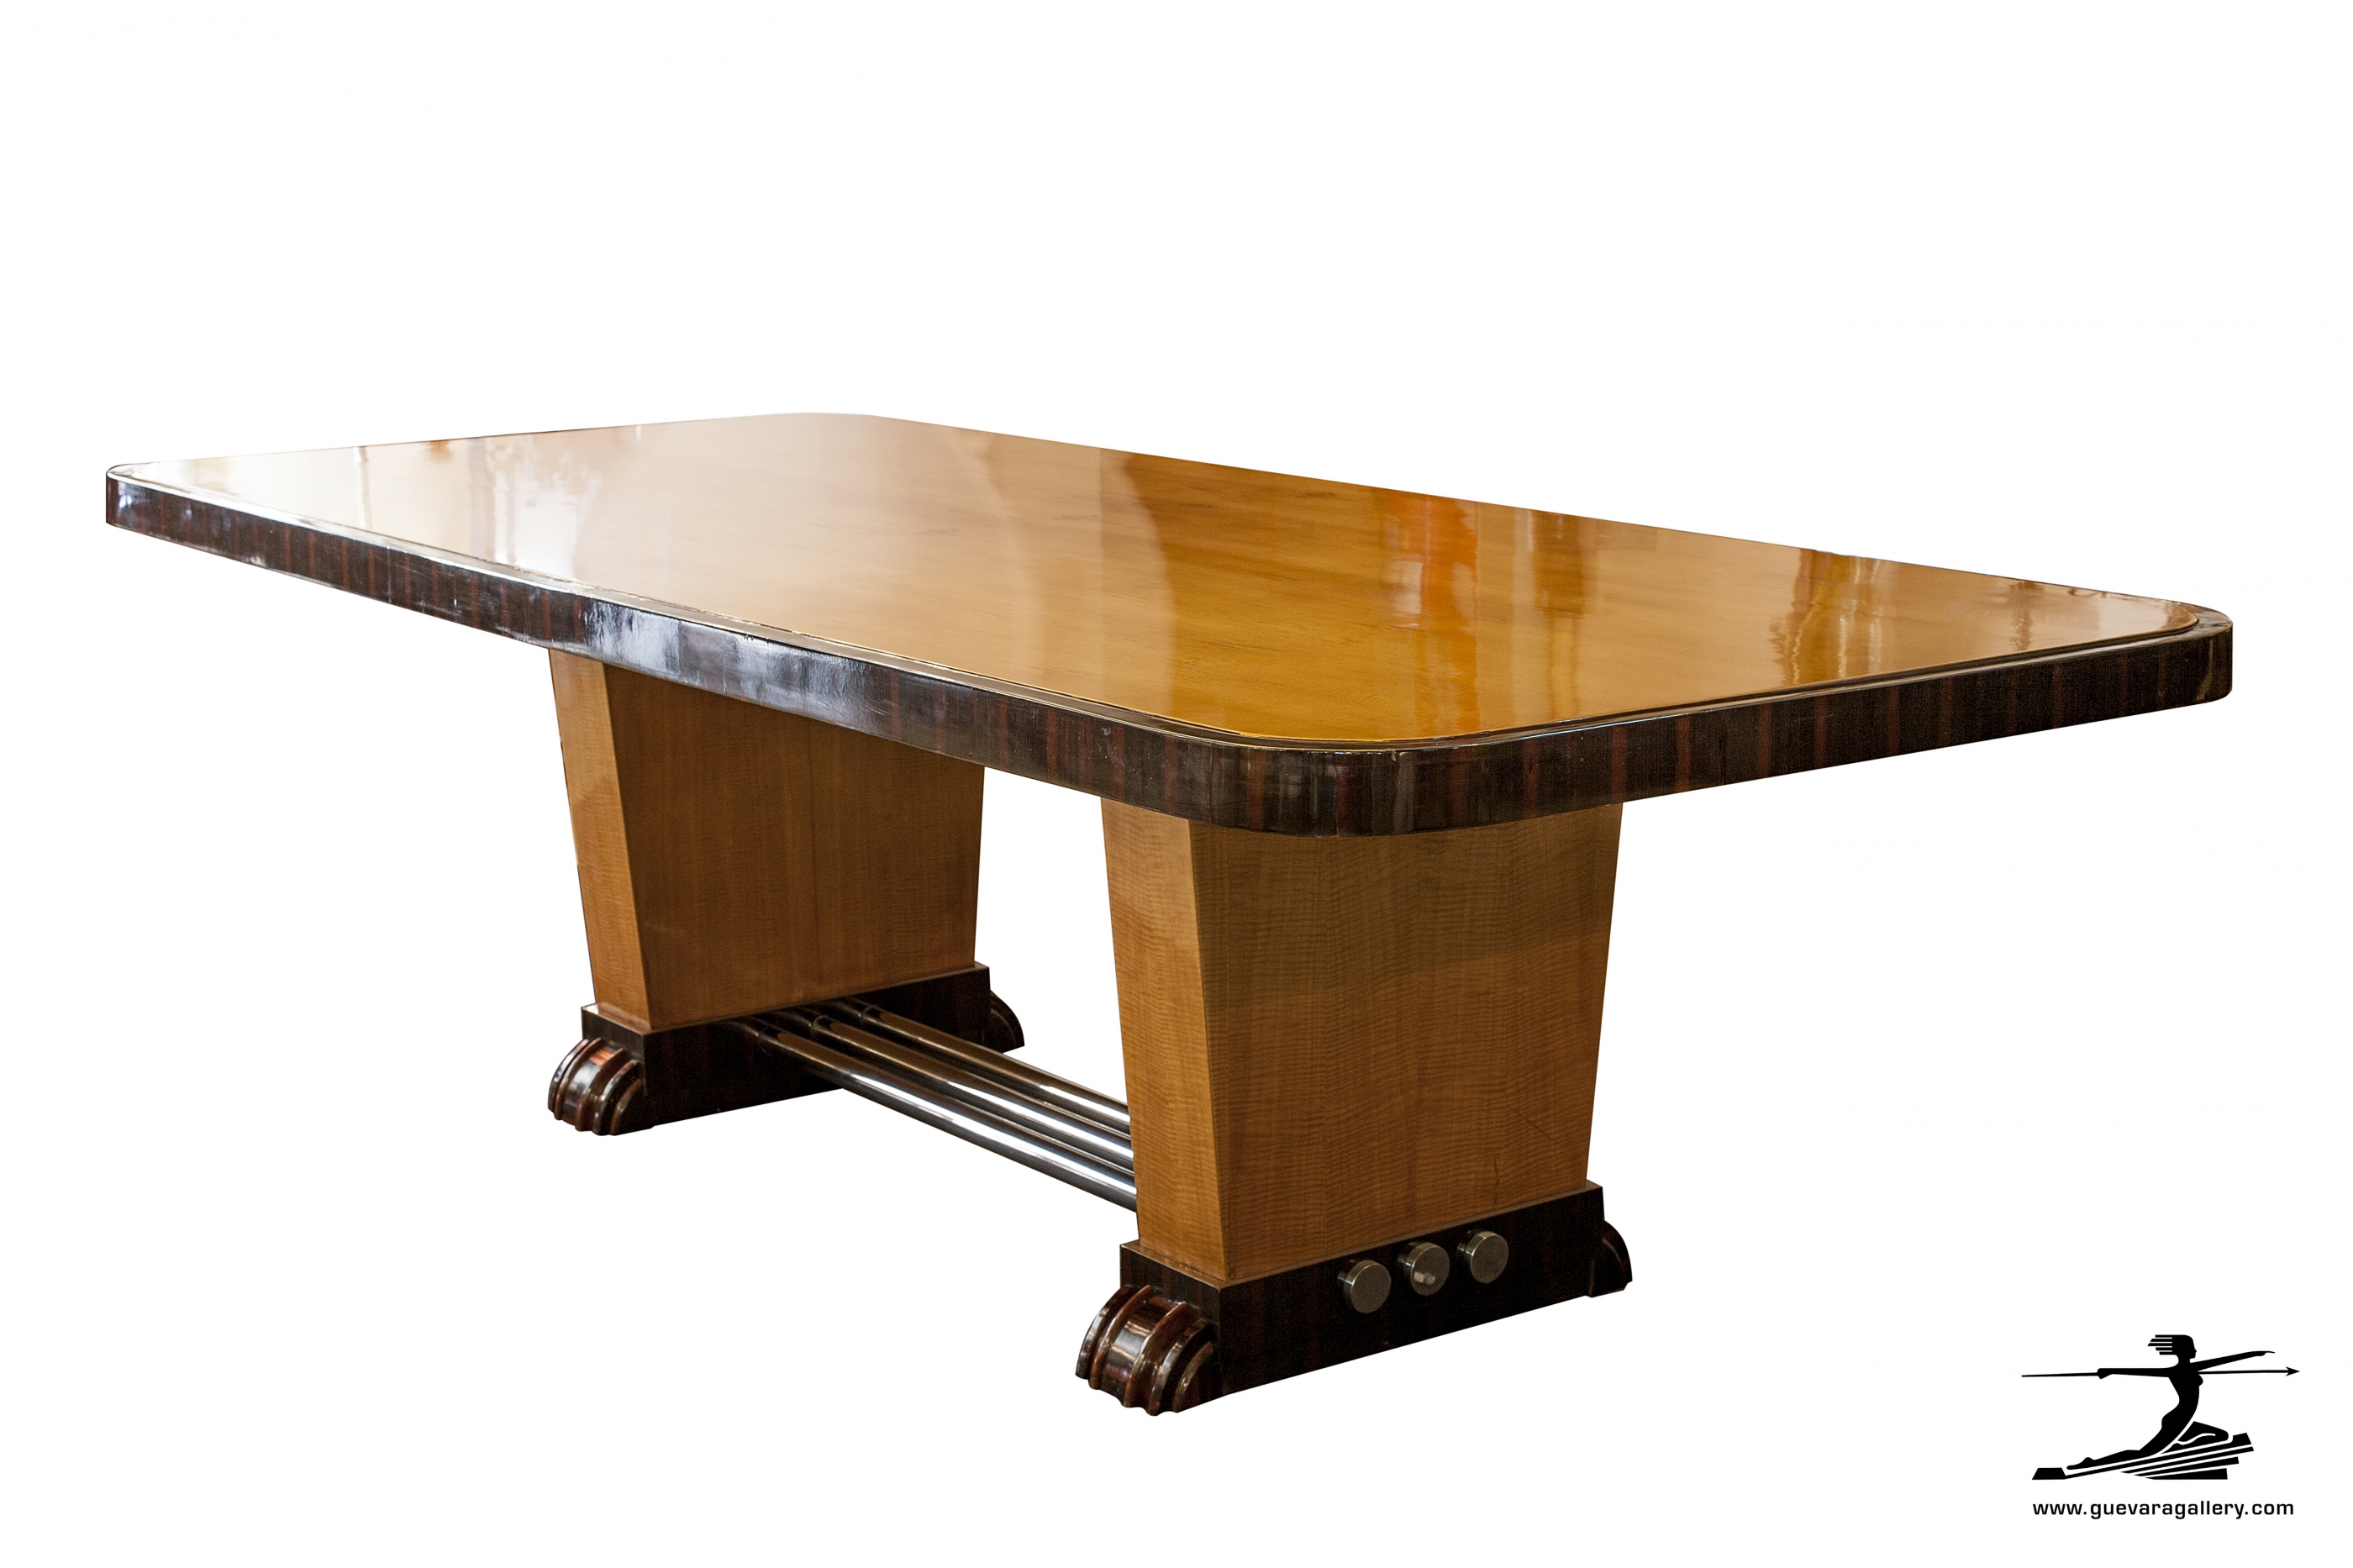 French art deco dining table modernism - Table de nuit art deco ...